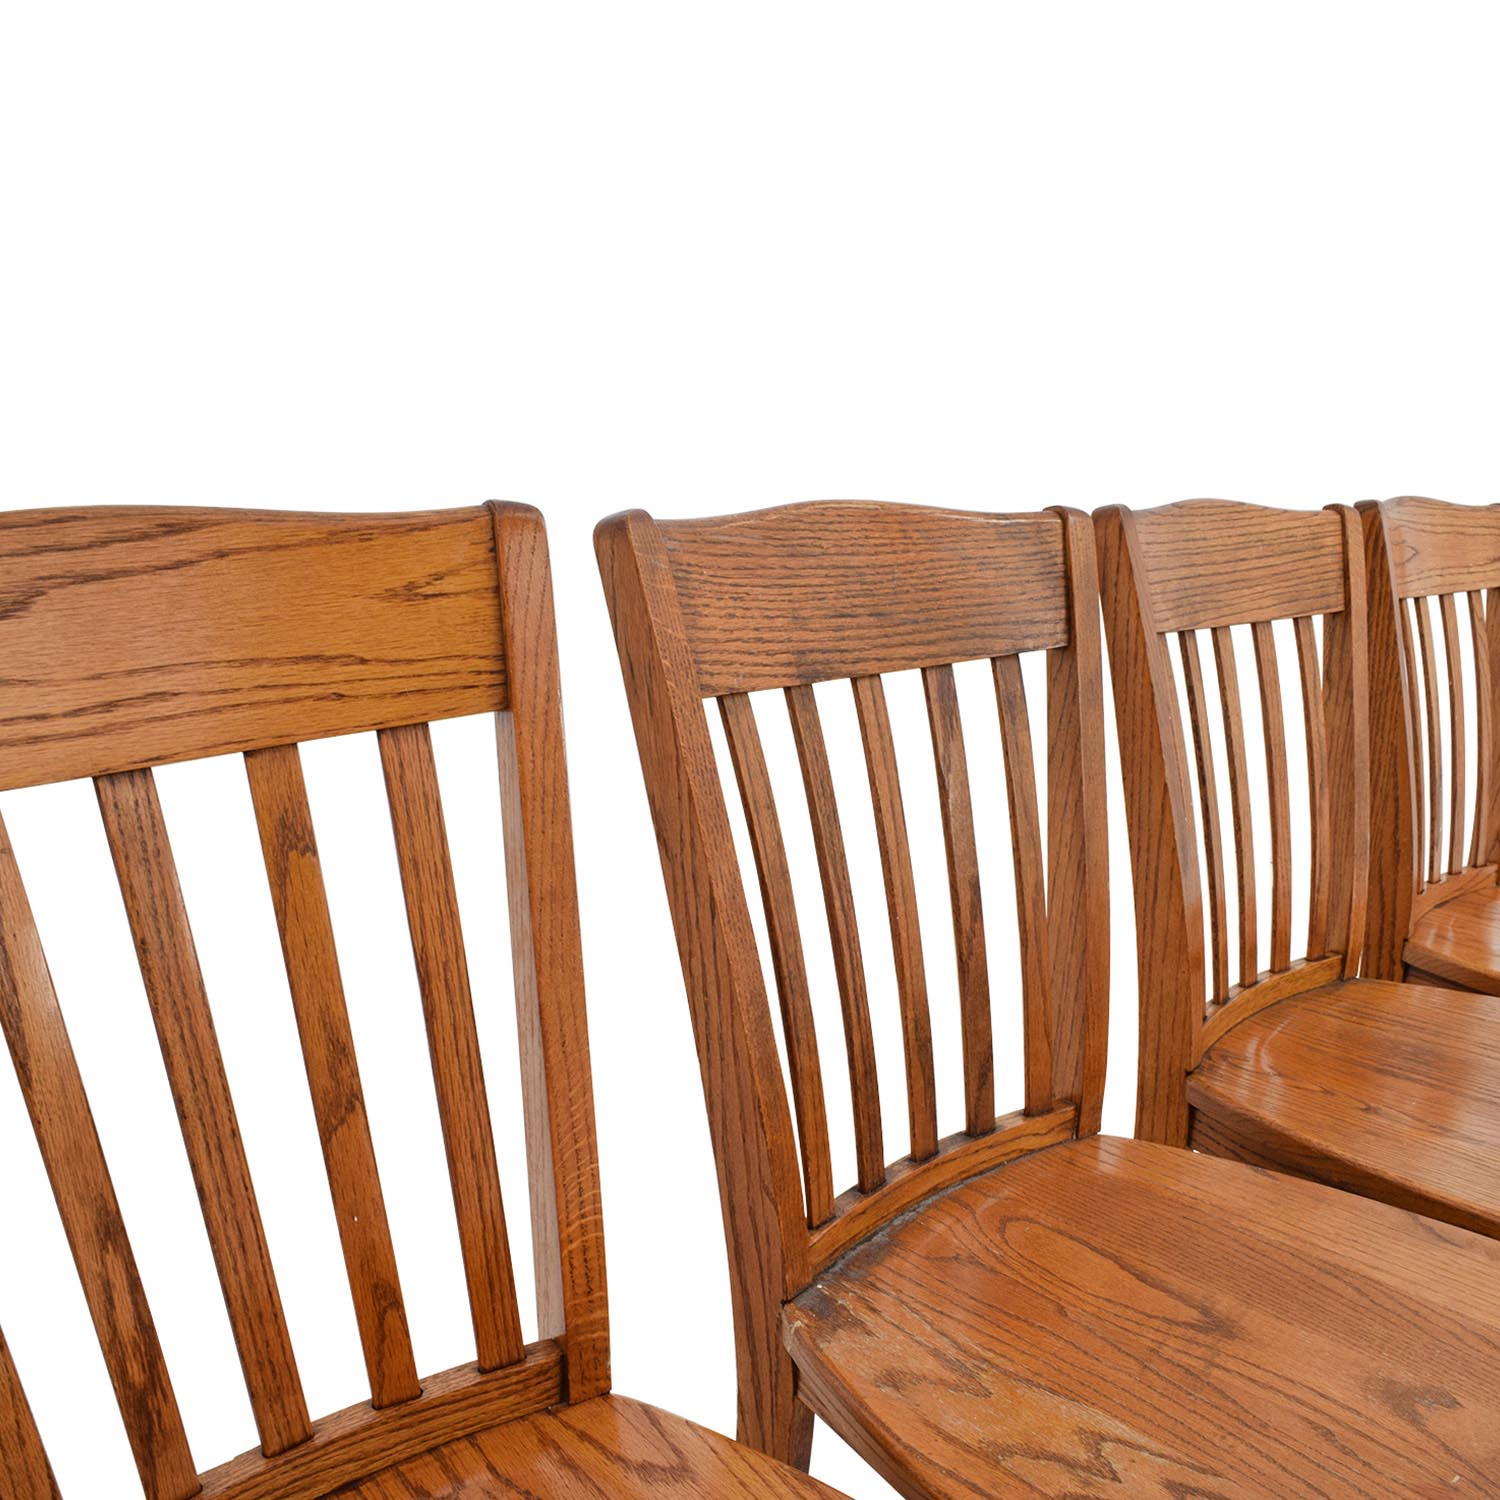 wooden slat chairs stretch chair covers for sale in south africa 71 off four brown back wood